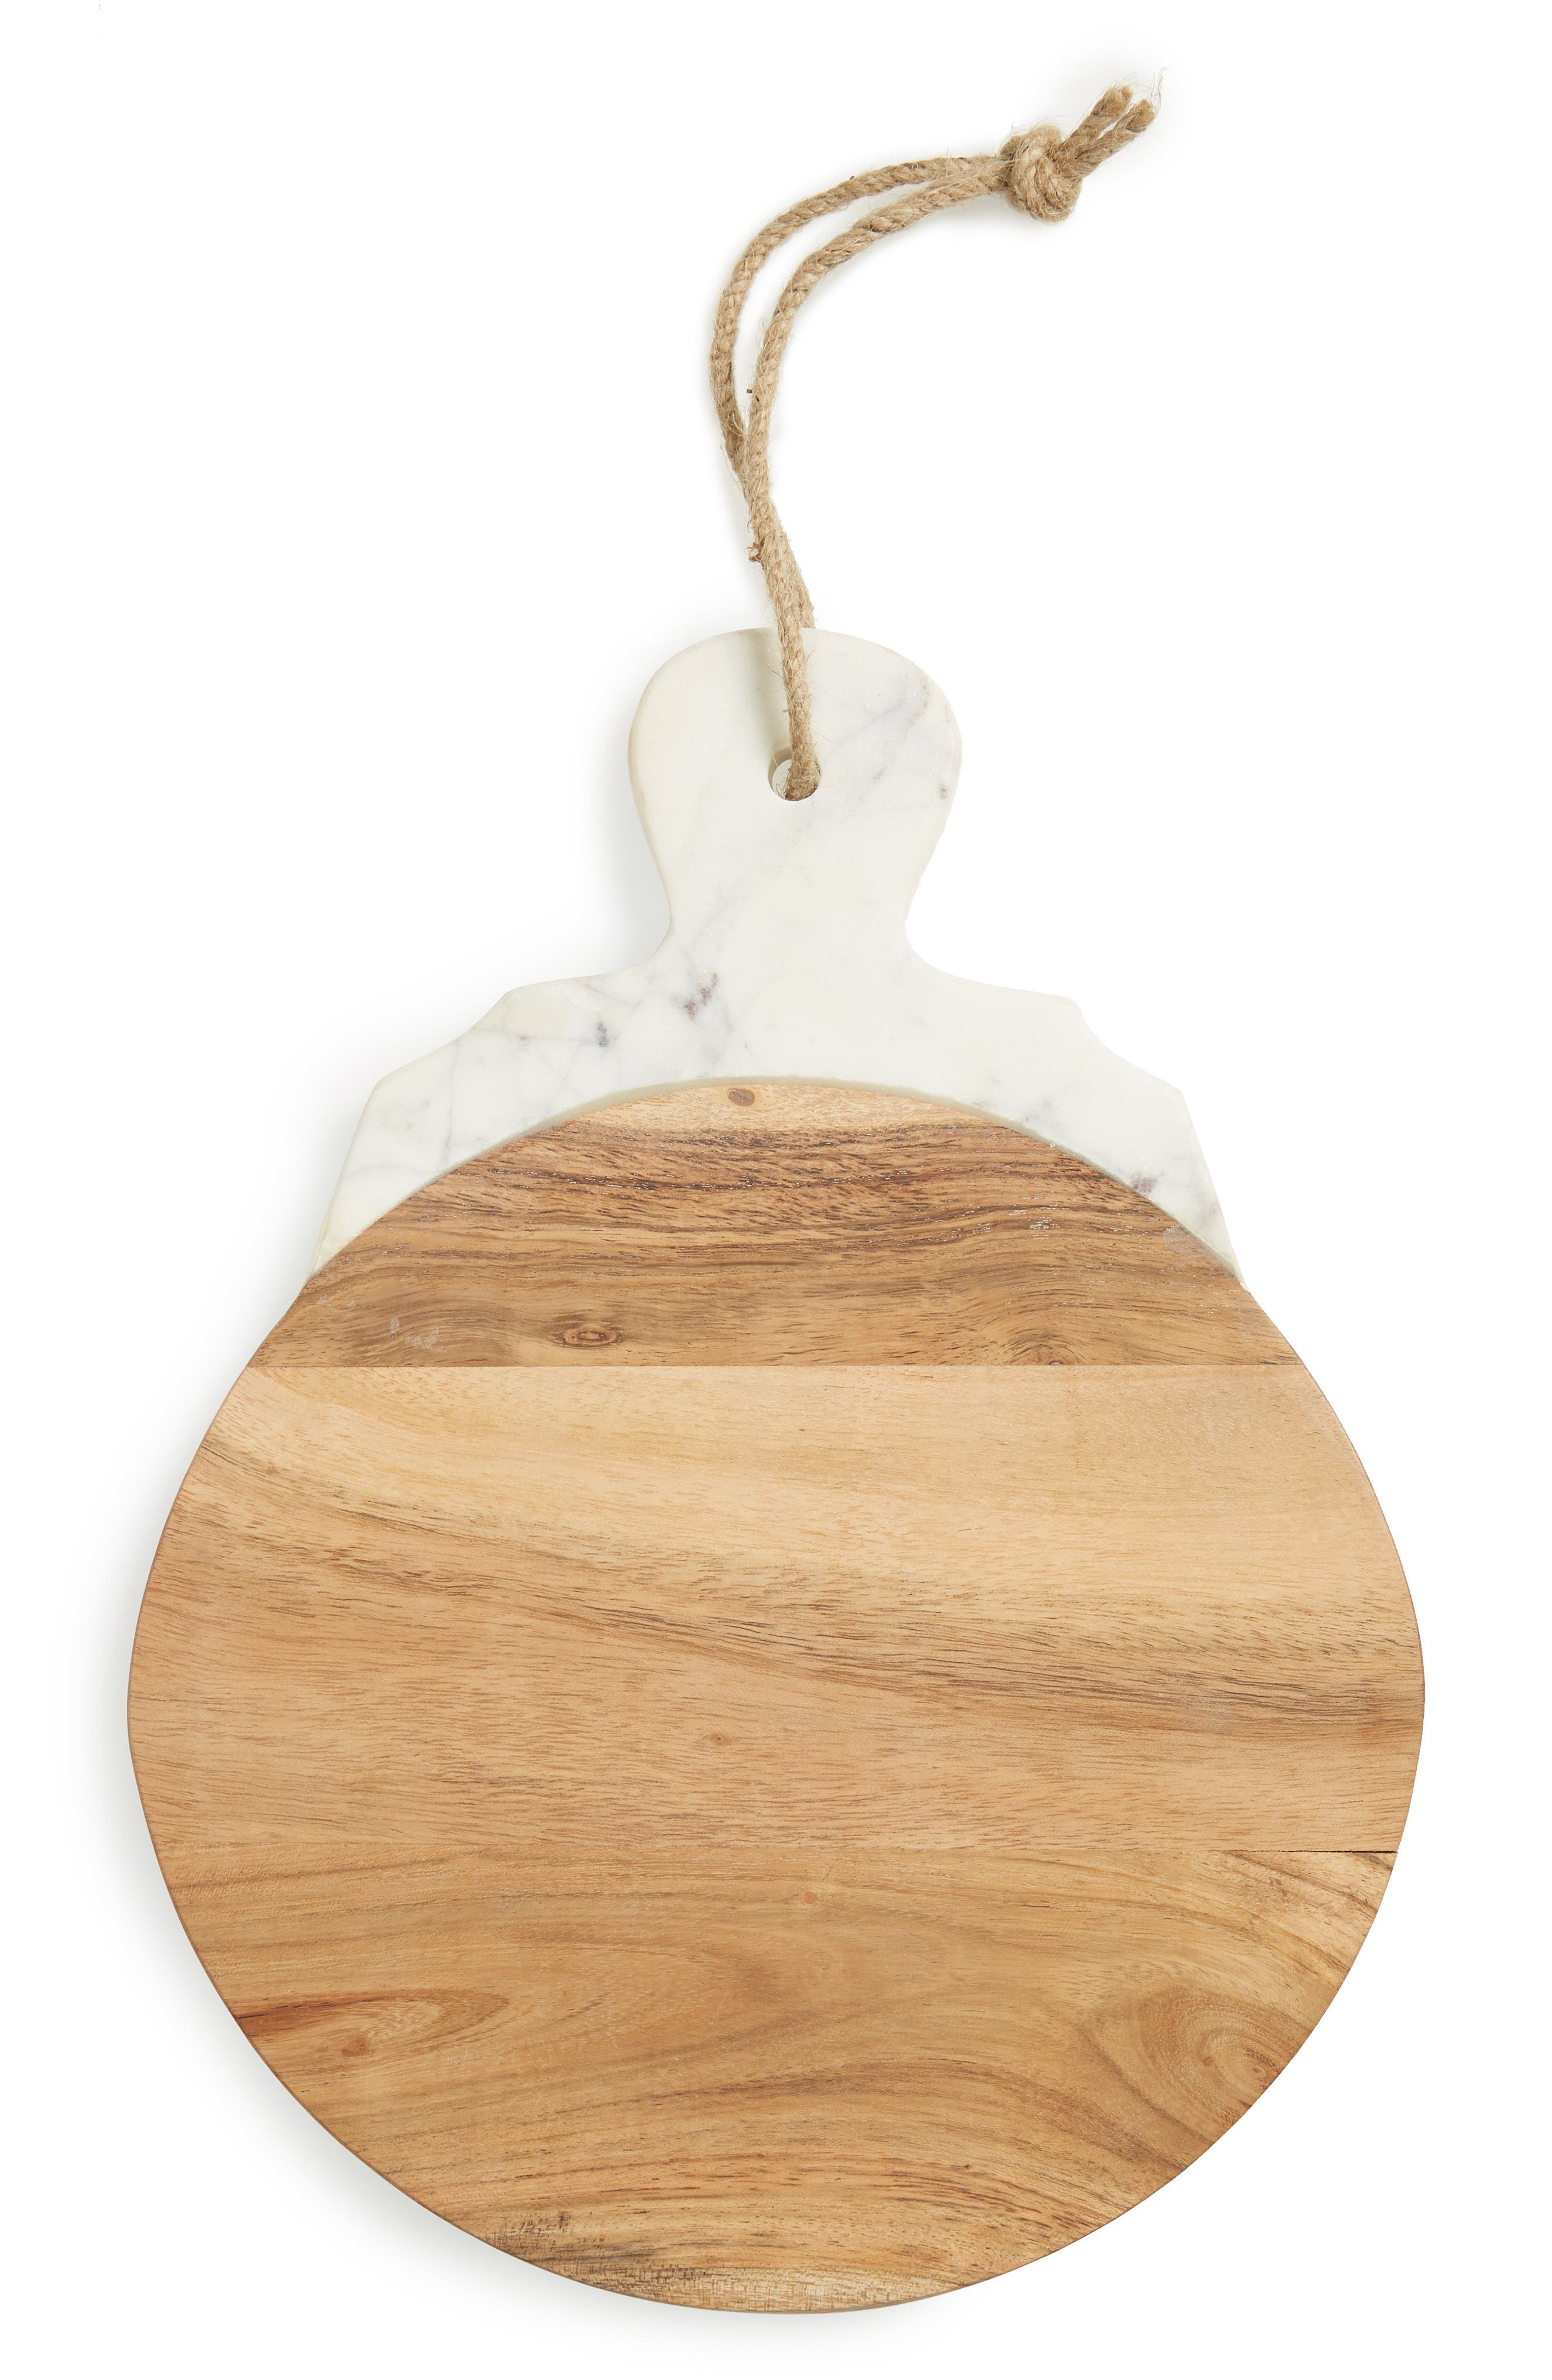 NORDSTROM AT HOME, Lavender Marble & Wood Round Tray, Main thumbnail 1, color, BROWN